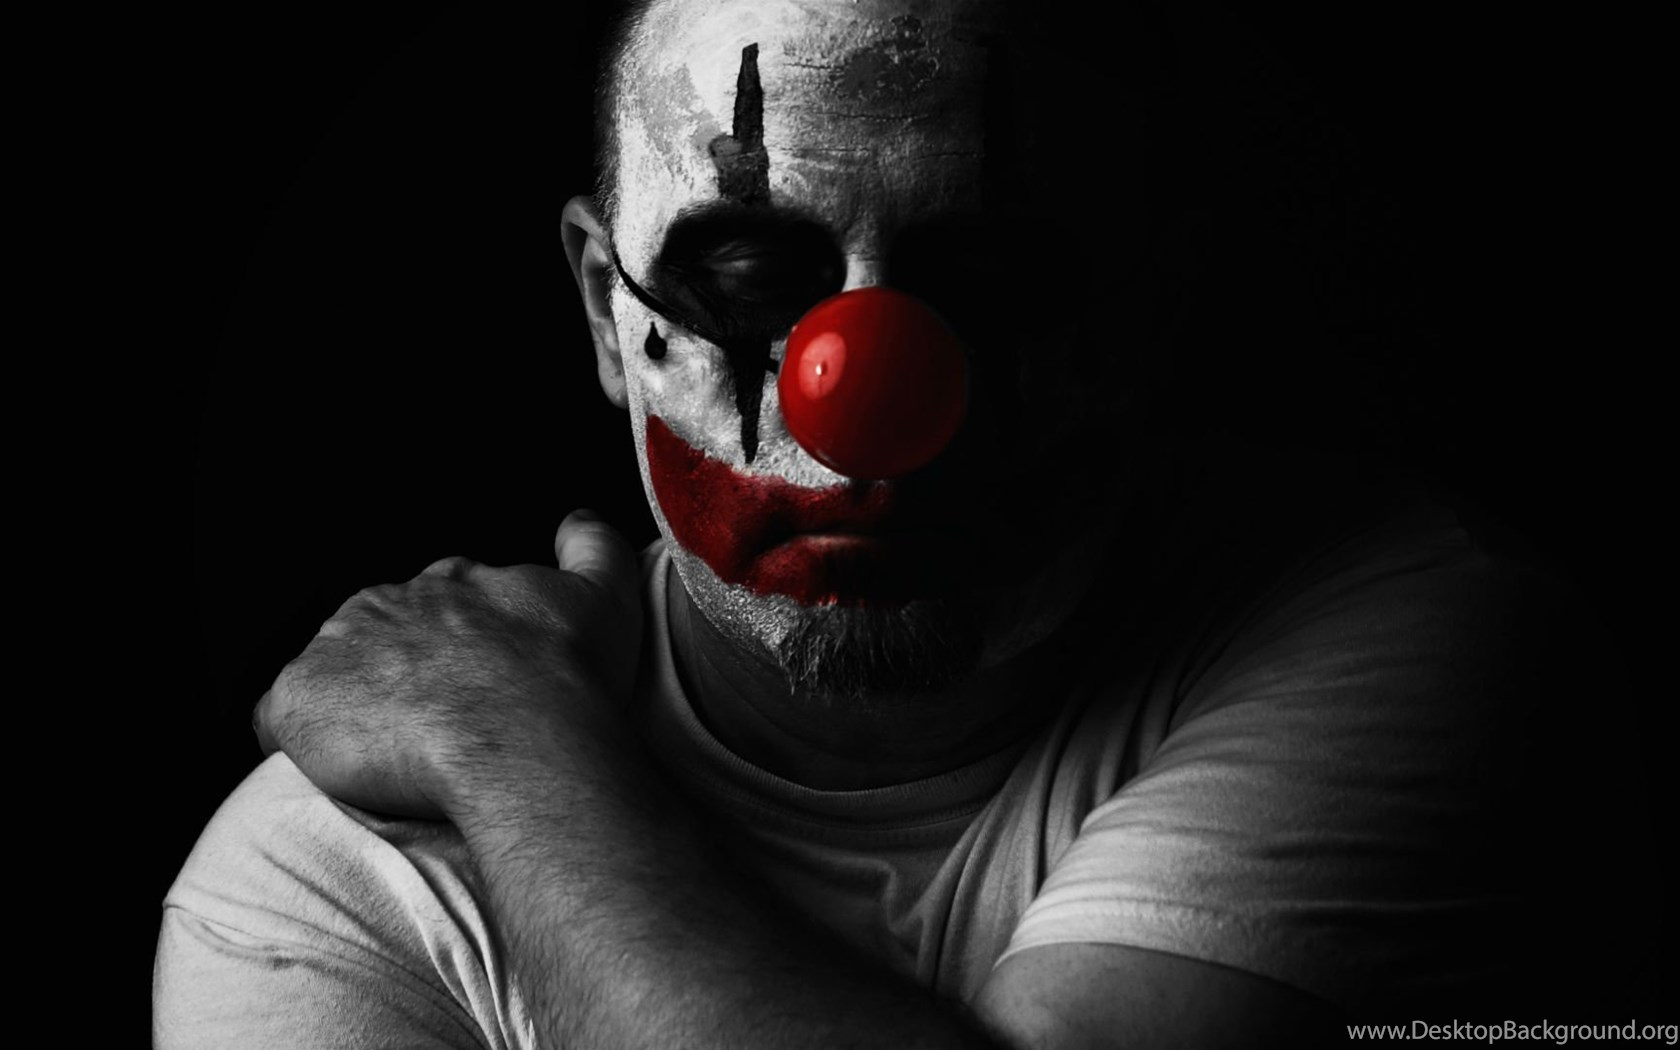 Download Clown Wallpapers Hd 1920x1080 HALLOWEEN Clown Dark